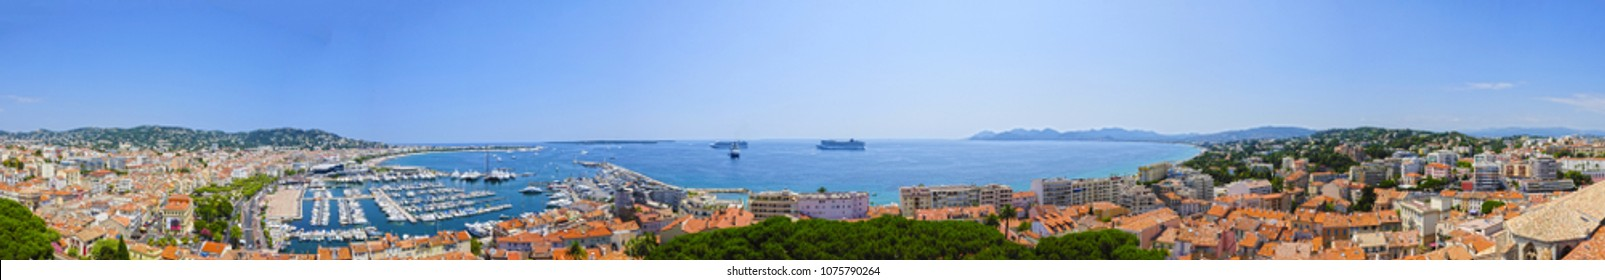 Panorama of Cannes in France with marina, cruise ships, palace of festivals, Croisette, city and highland